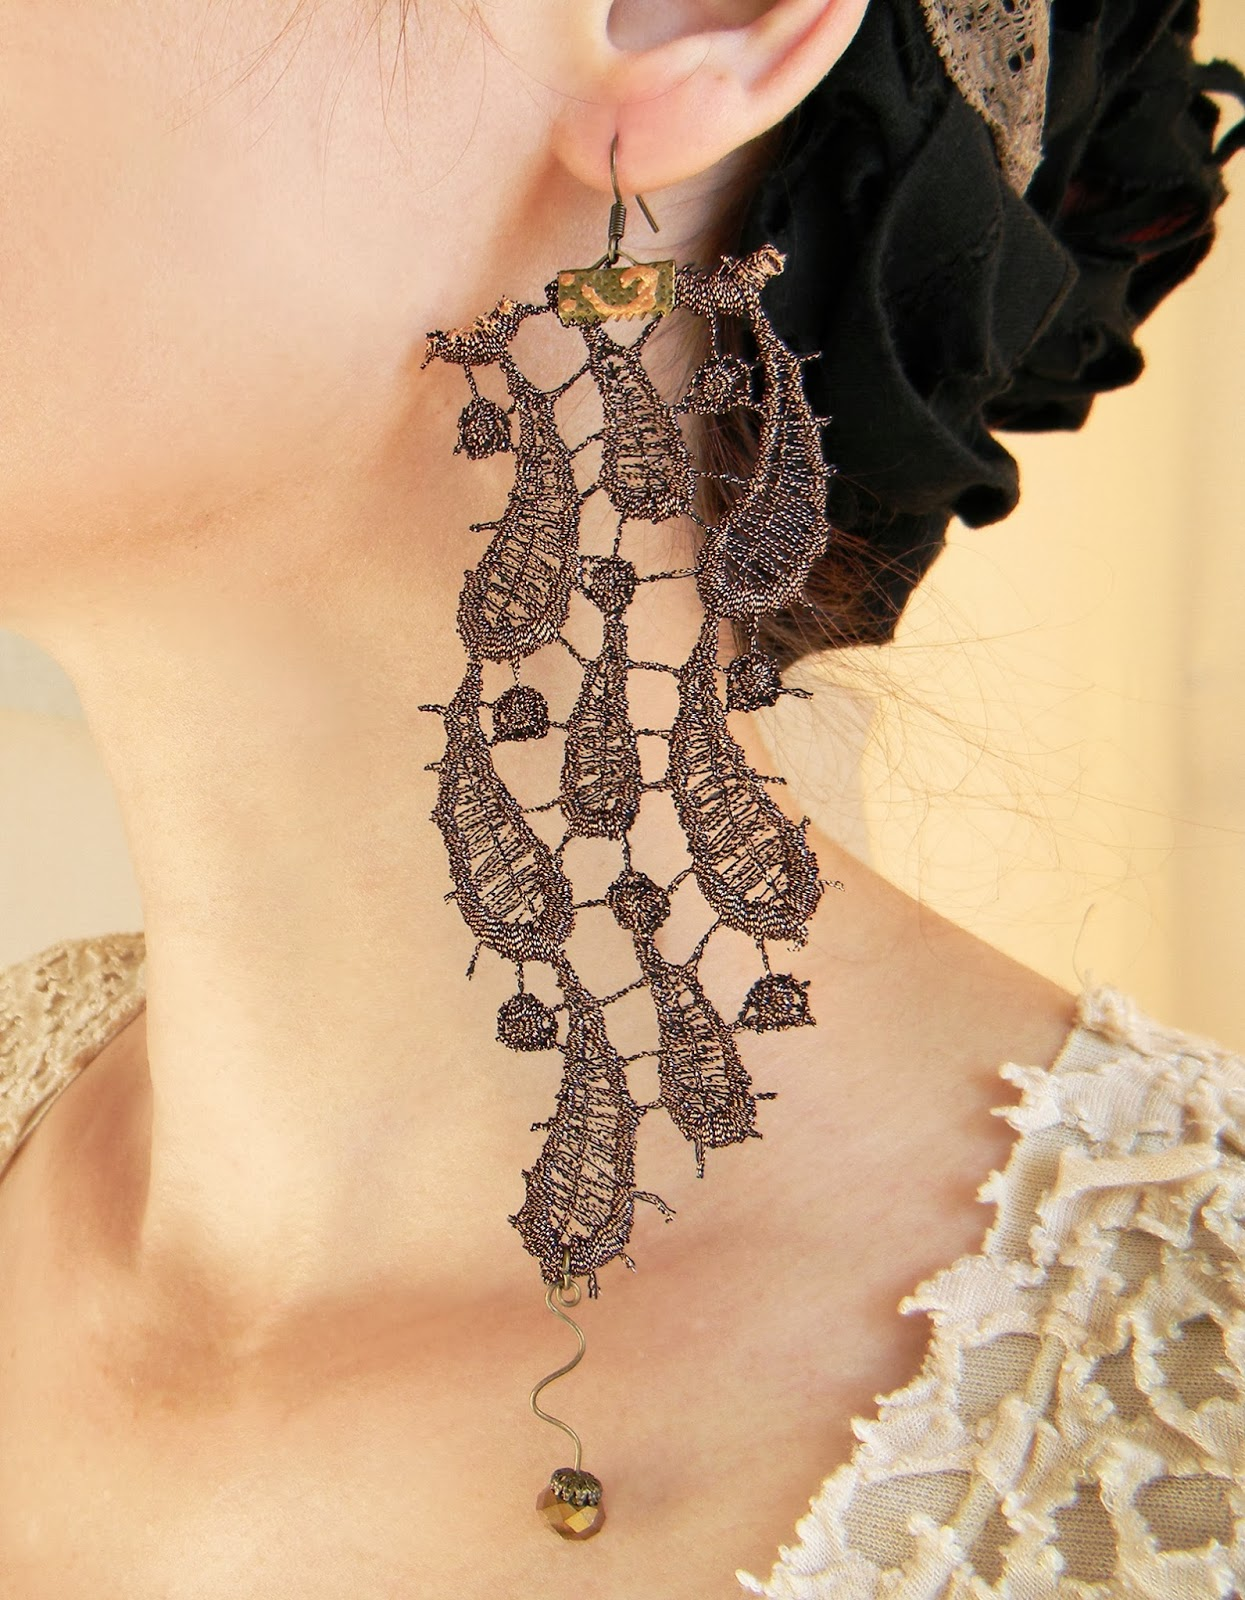 Floral Lace Earrings Baroque Art Nouveau Jewelry Fashion Earrings